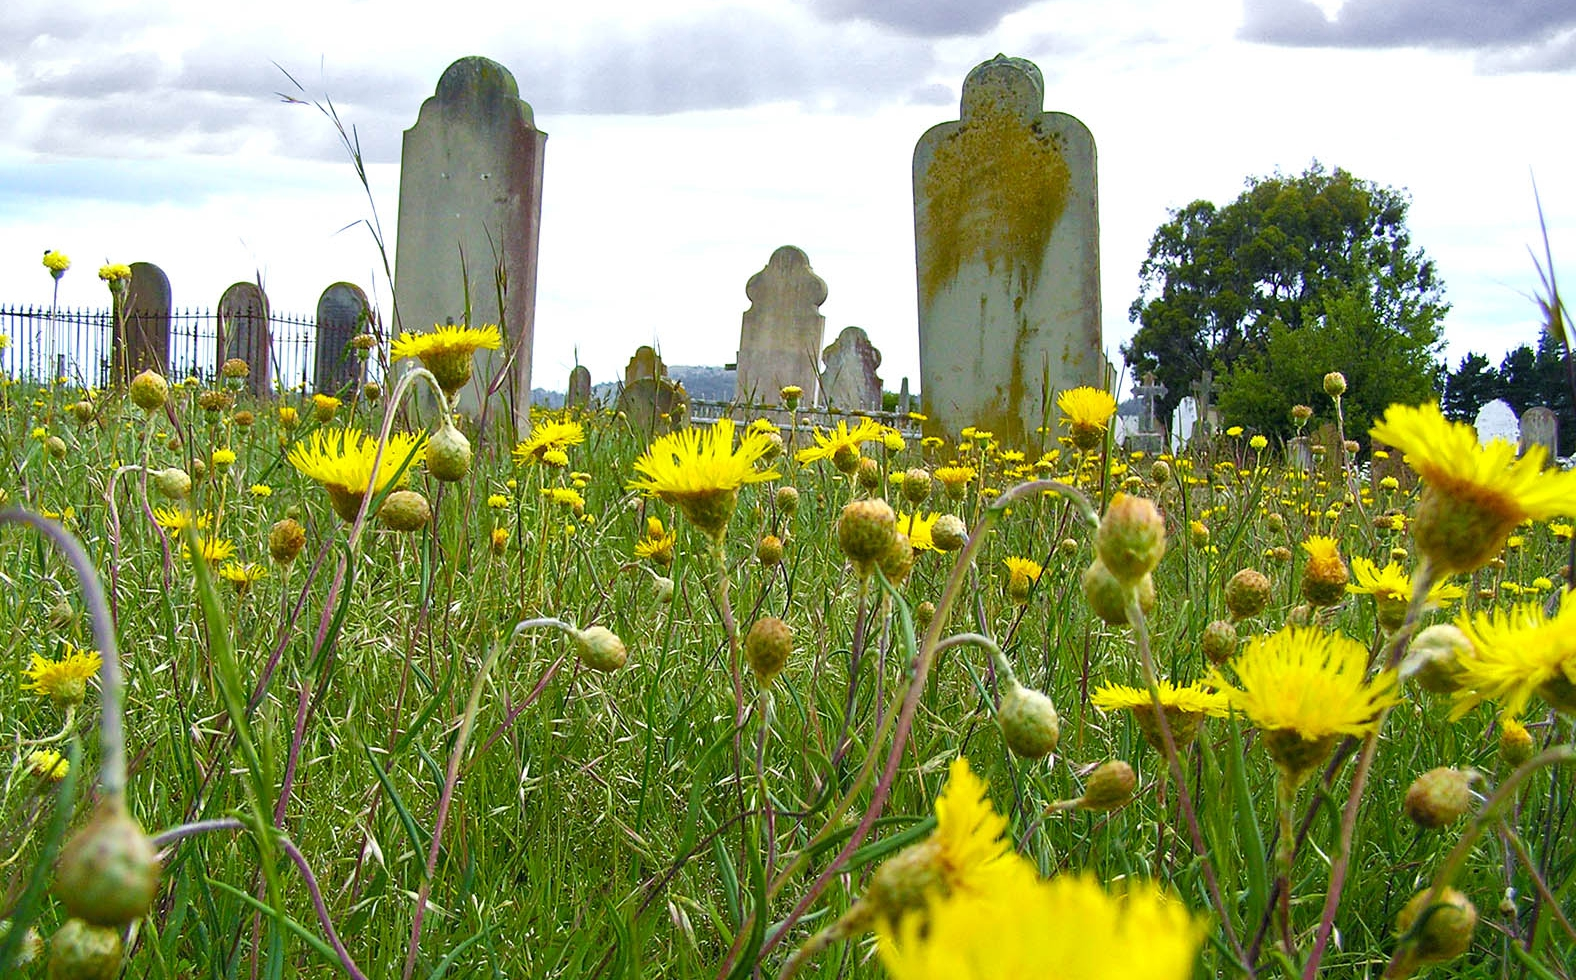 Midlands Cemetery and tombstones with rare and threatened grassland plant species in flower.